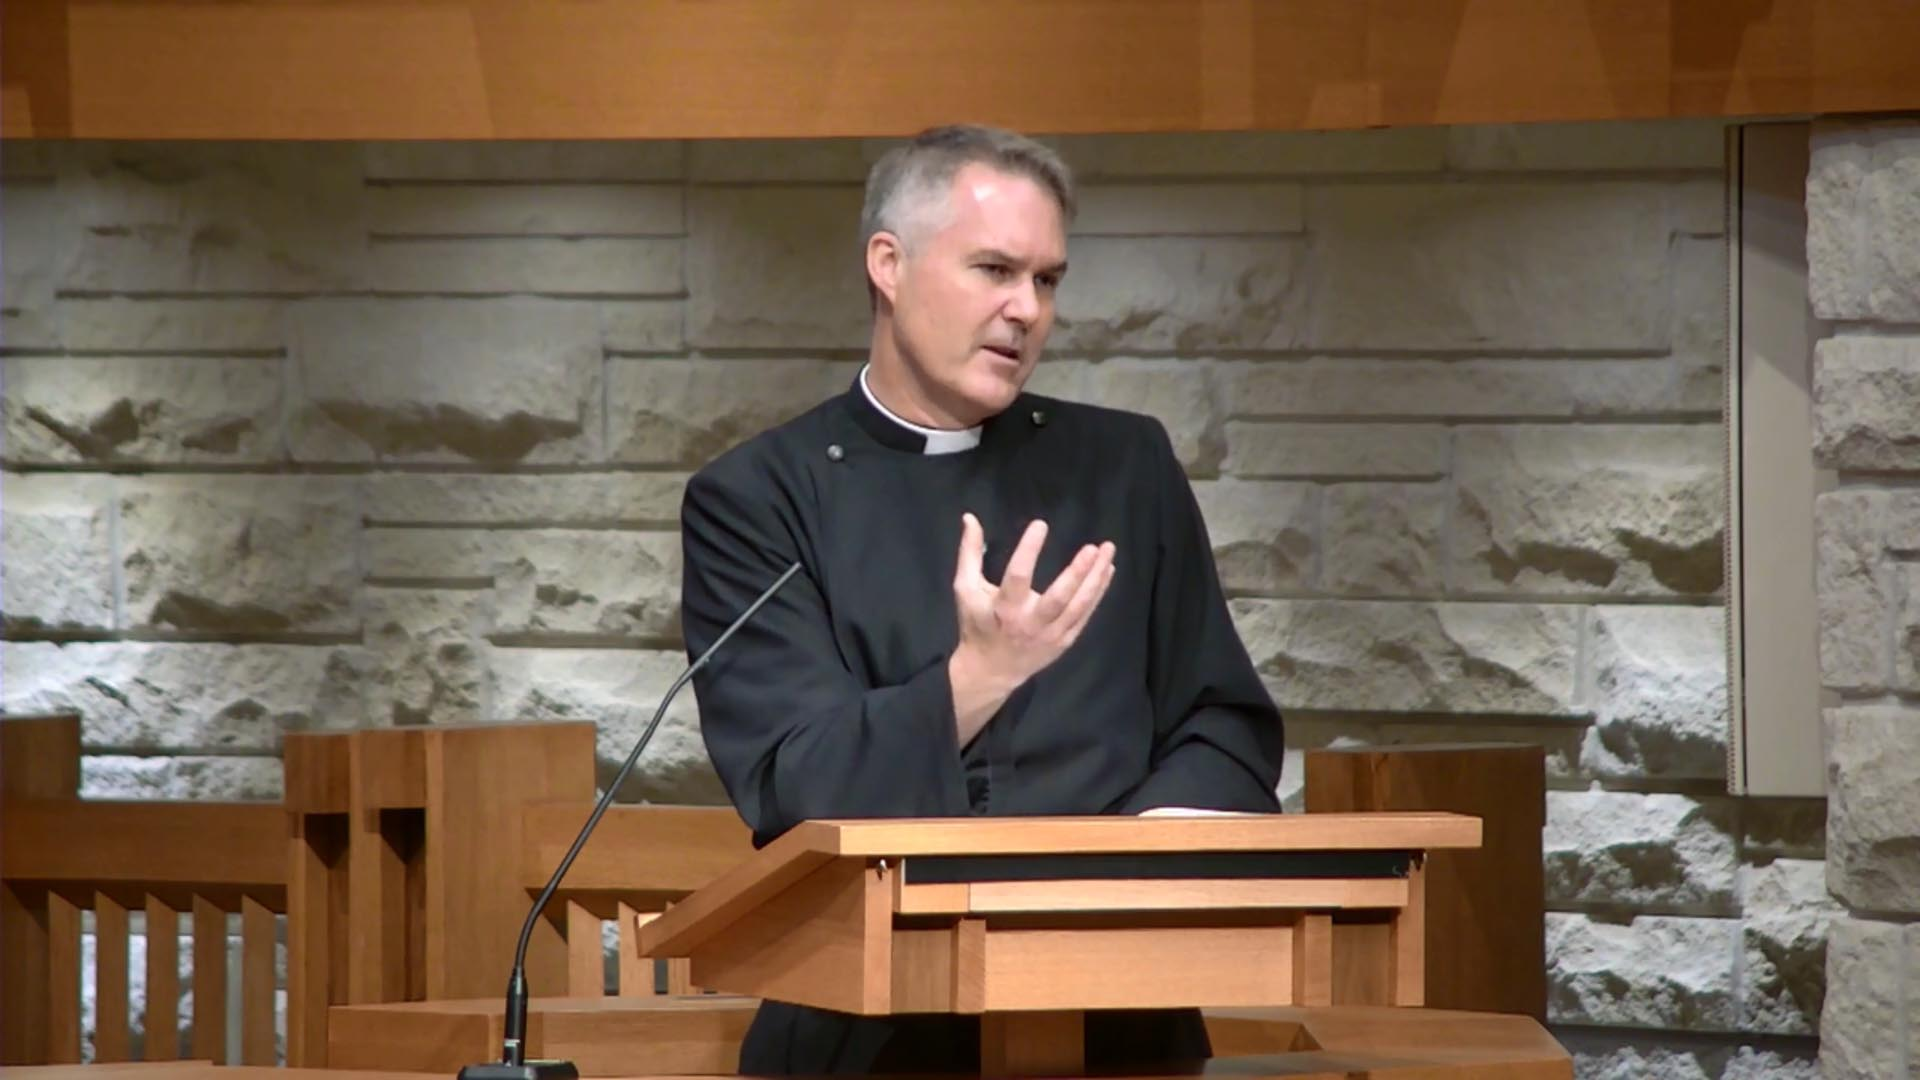 Good Friday Sermon by the Rev. Charlie Holt